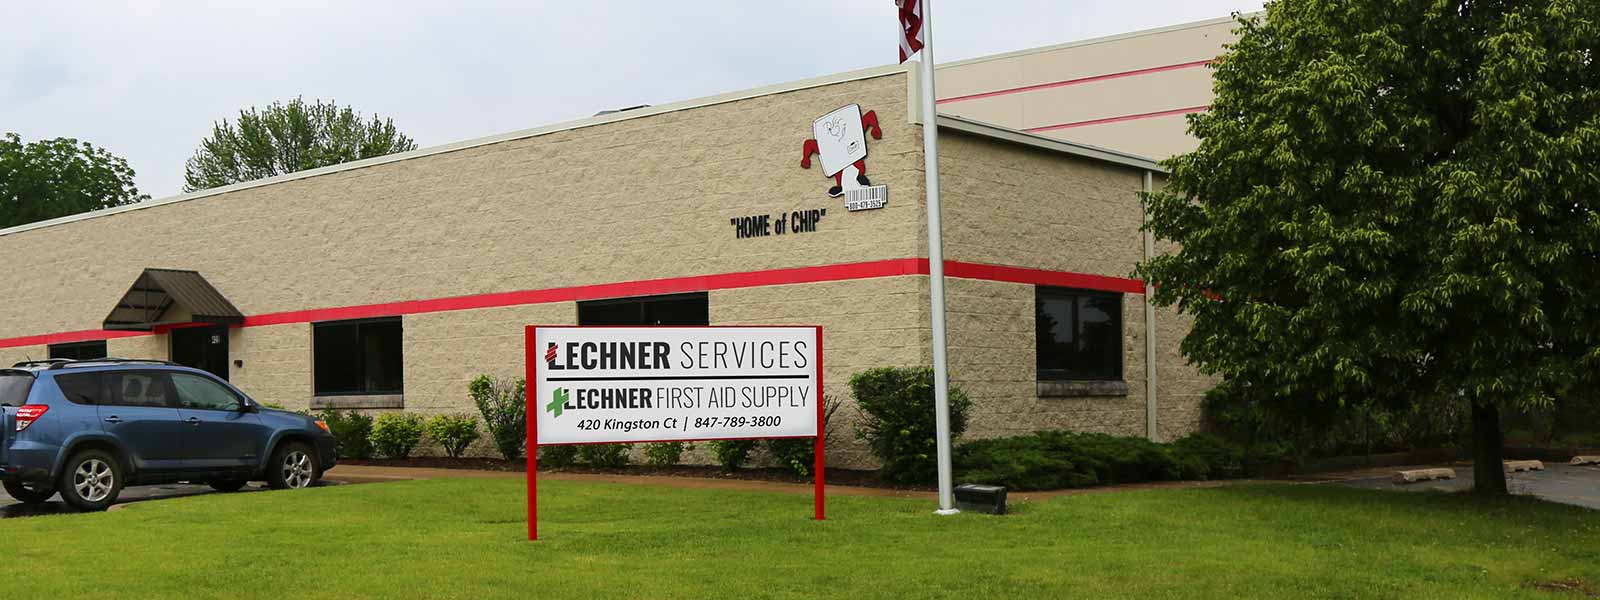 The outside of Lechner First Aid and Uniform Services brick building with a Lechner Services sign in the front yard.